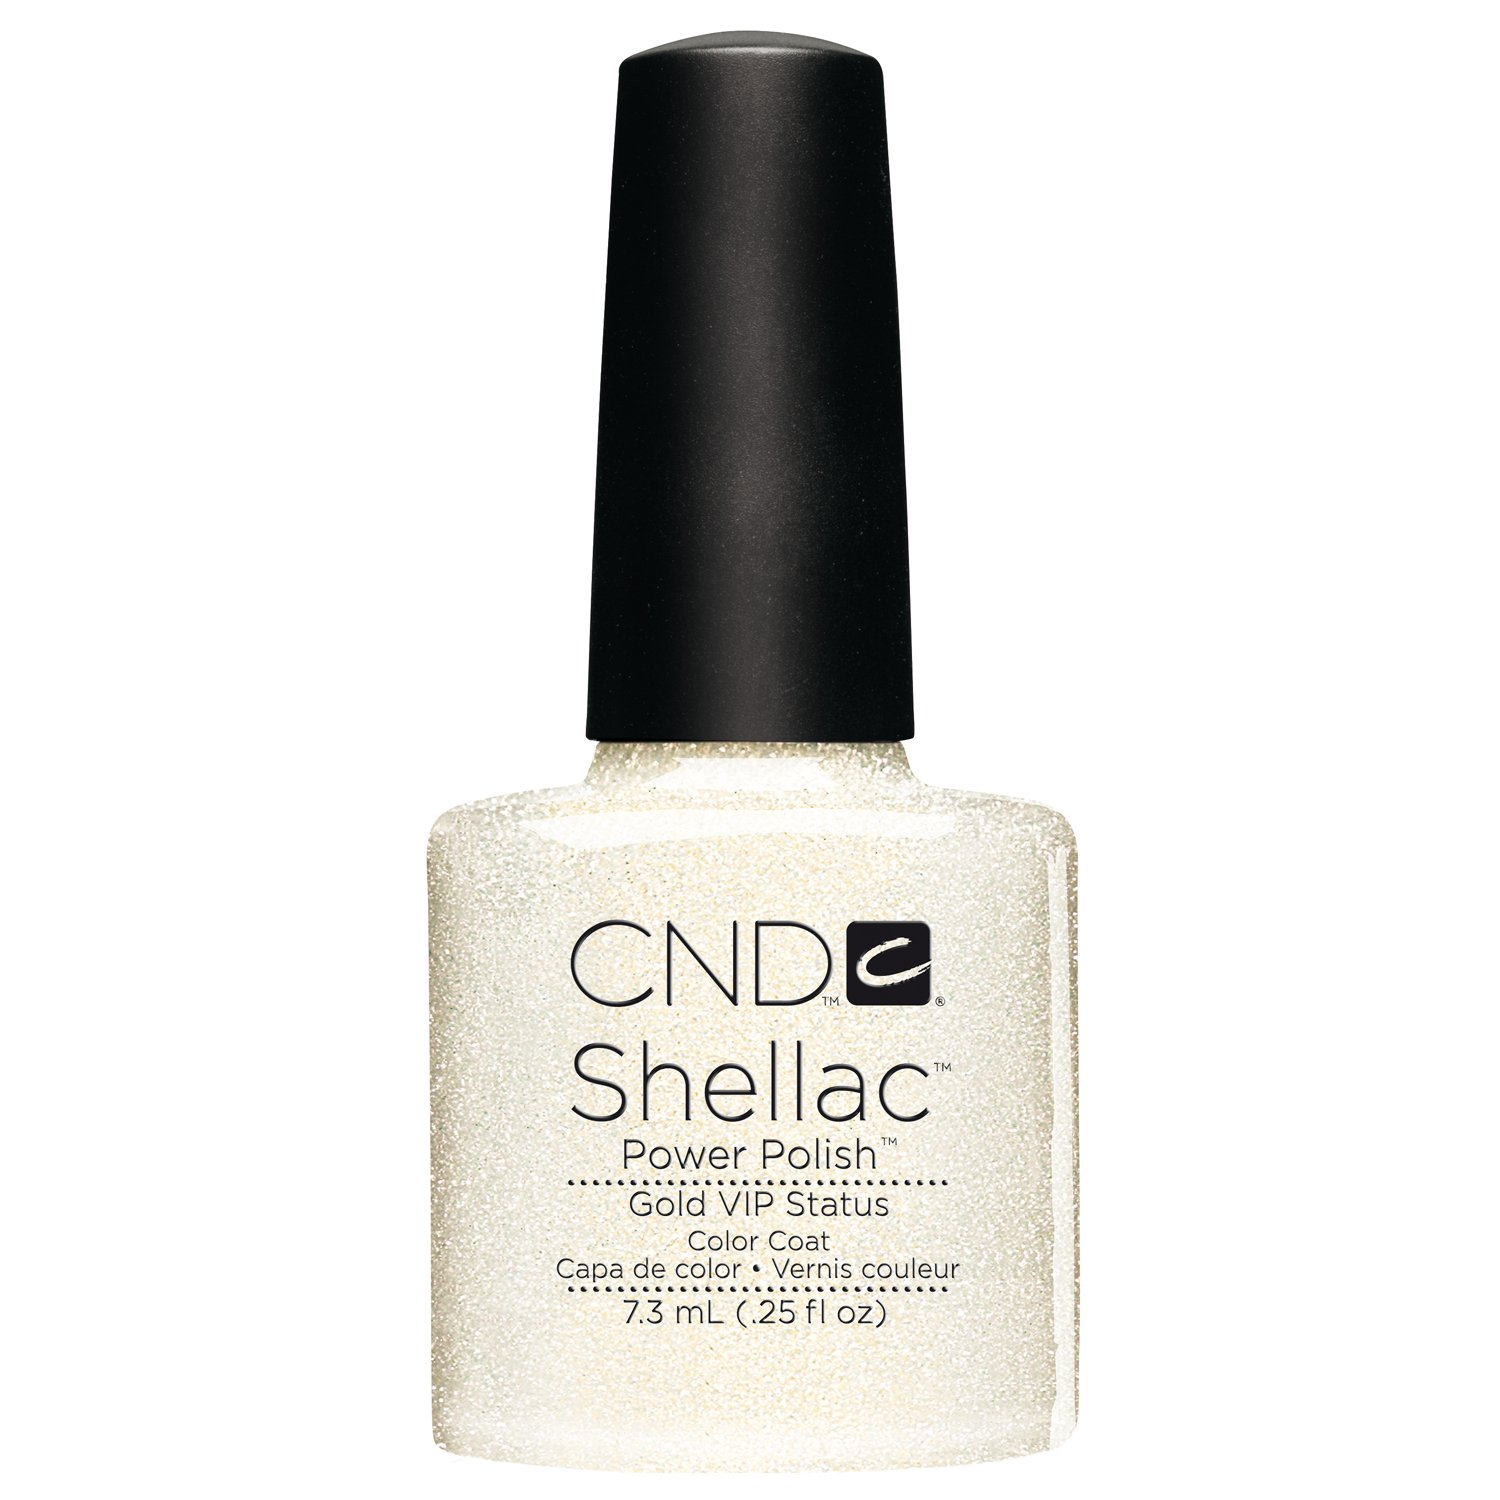 CND Shellac Negligee, 1er Pack (1 x 7 ml): Amazon.de: Beauty